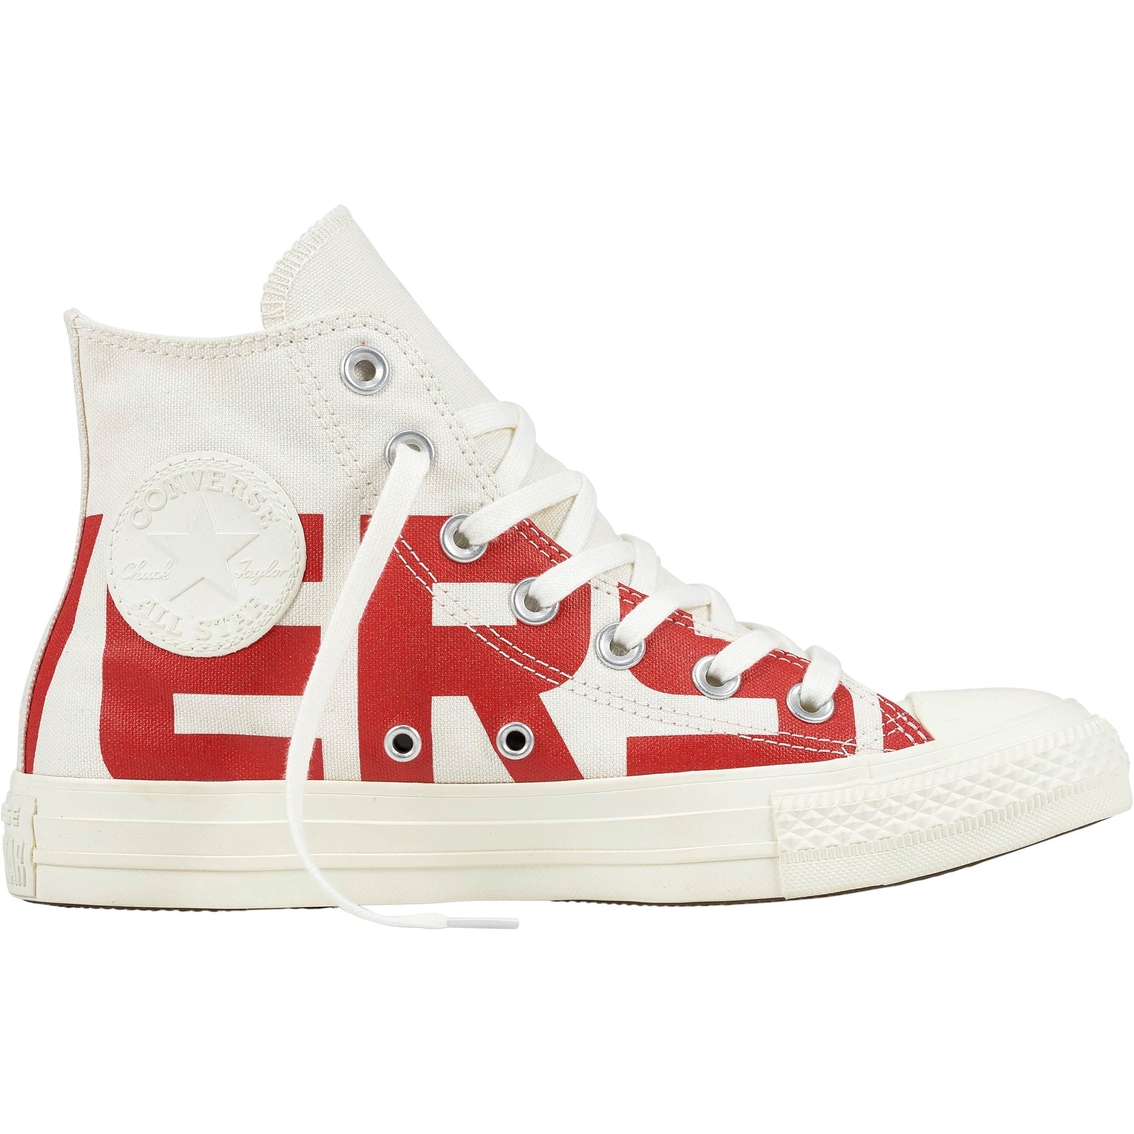 8c668fc7327cd4 Converse Men s Chuck Taylor All Star Wordmark High Top Classic Sneakers